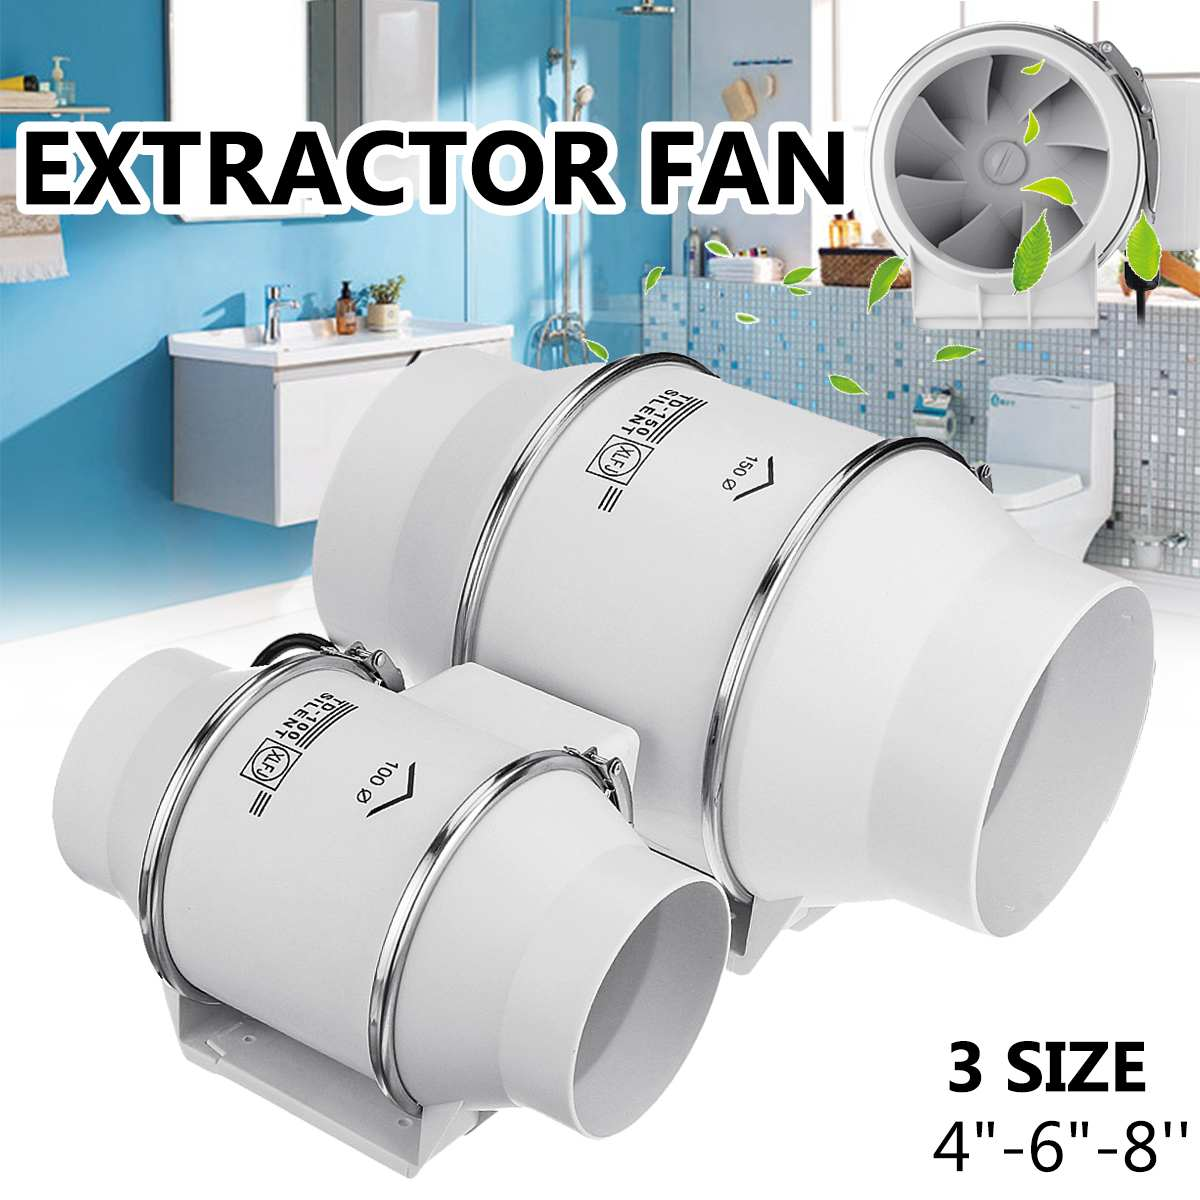 4/6/8 Inch Fan Silent Wall Extractor Exhaust Ventilation Fan Air Blower Window Ventilator Vent For Kitchen Bathrooms Bedroom